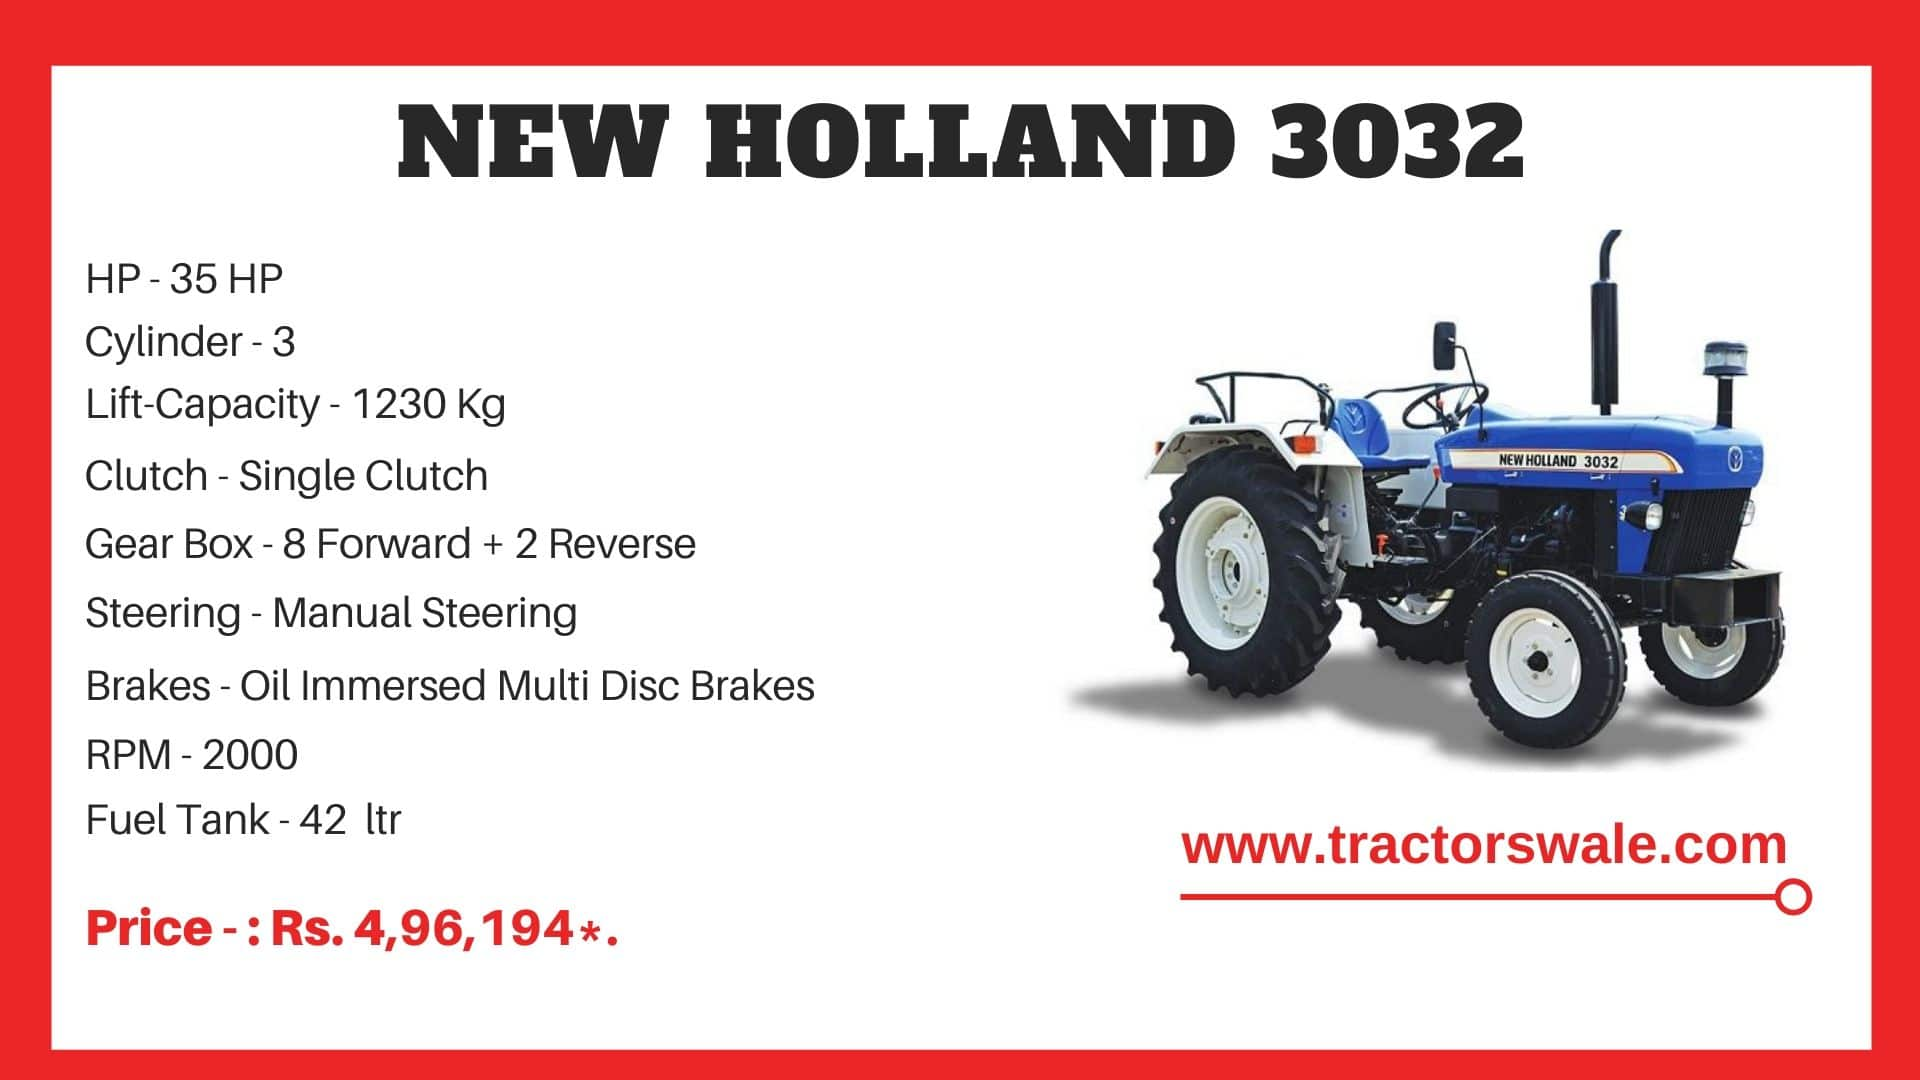 New Holland 3032 tractor specs